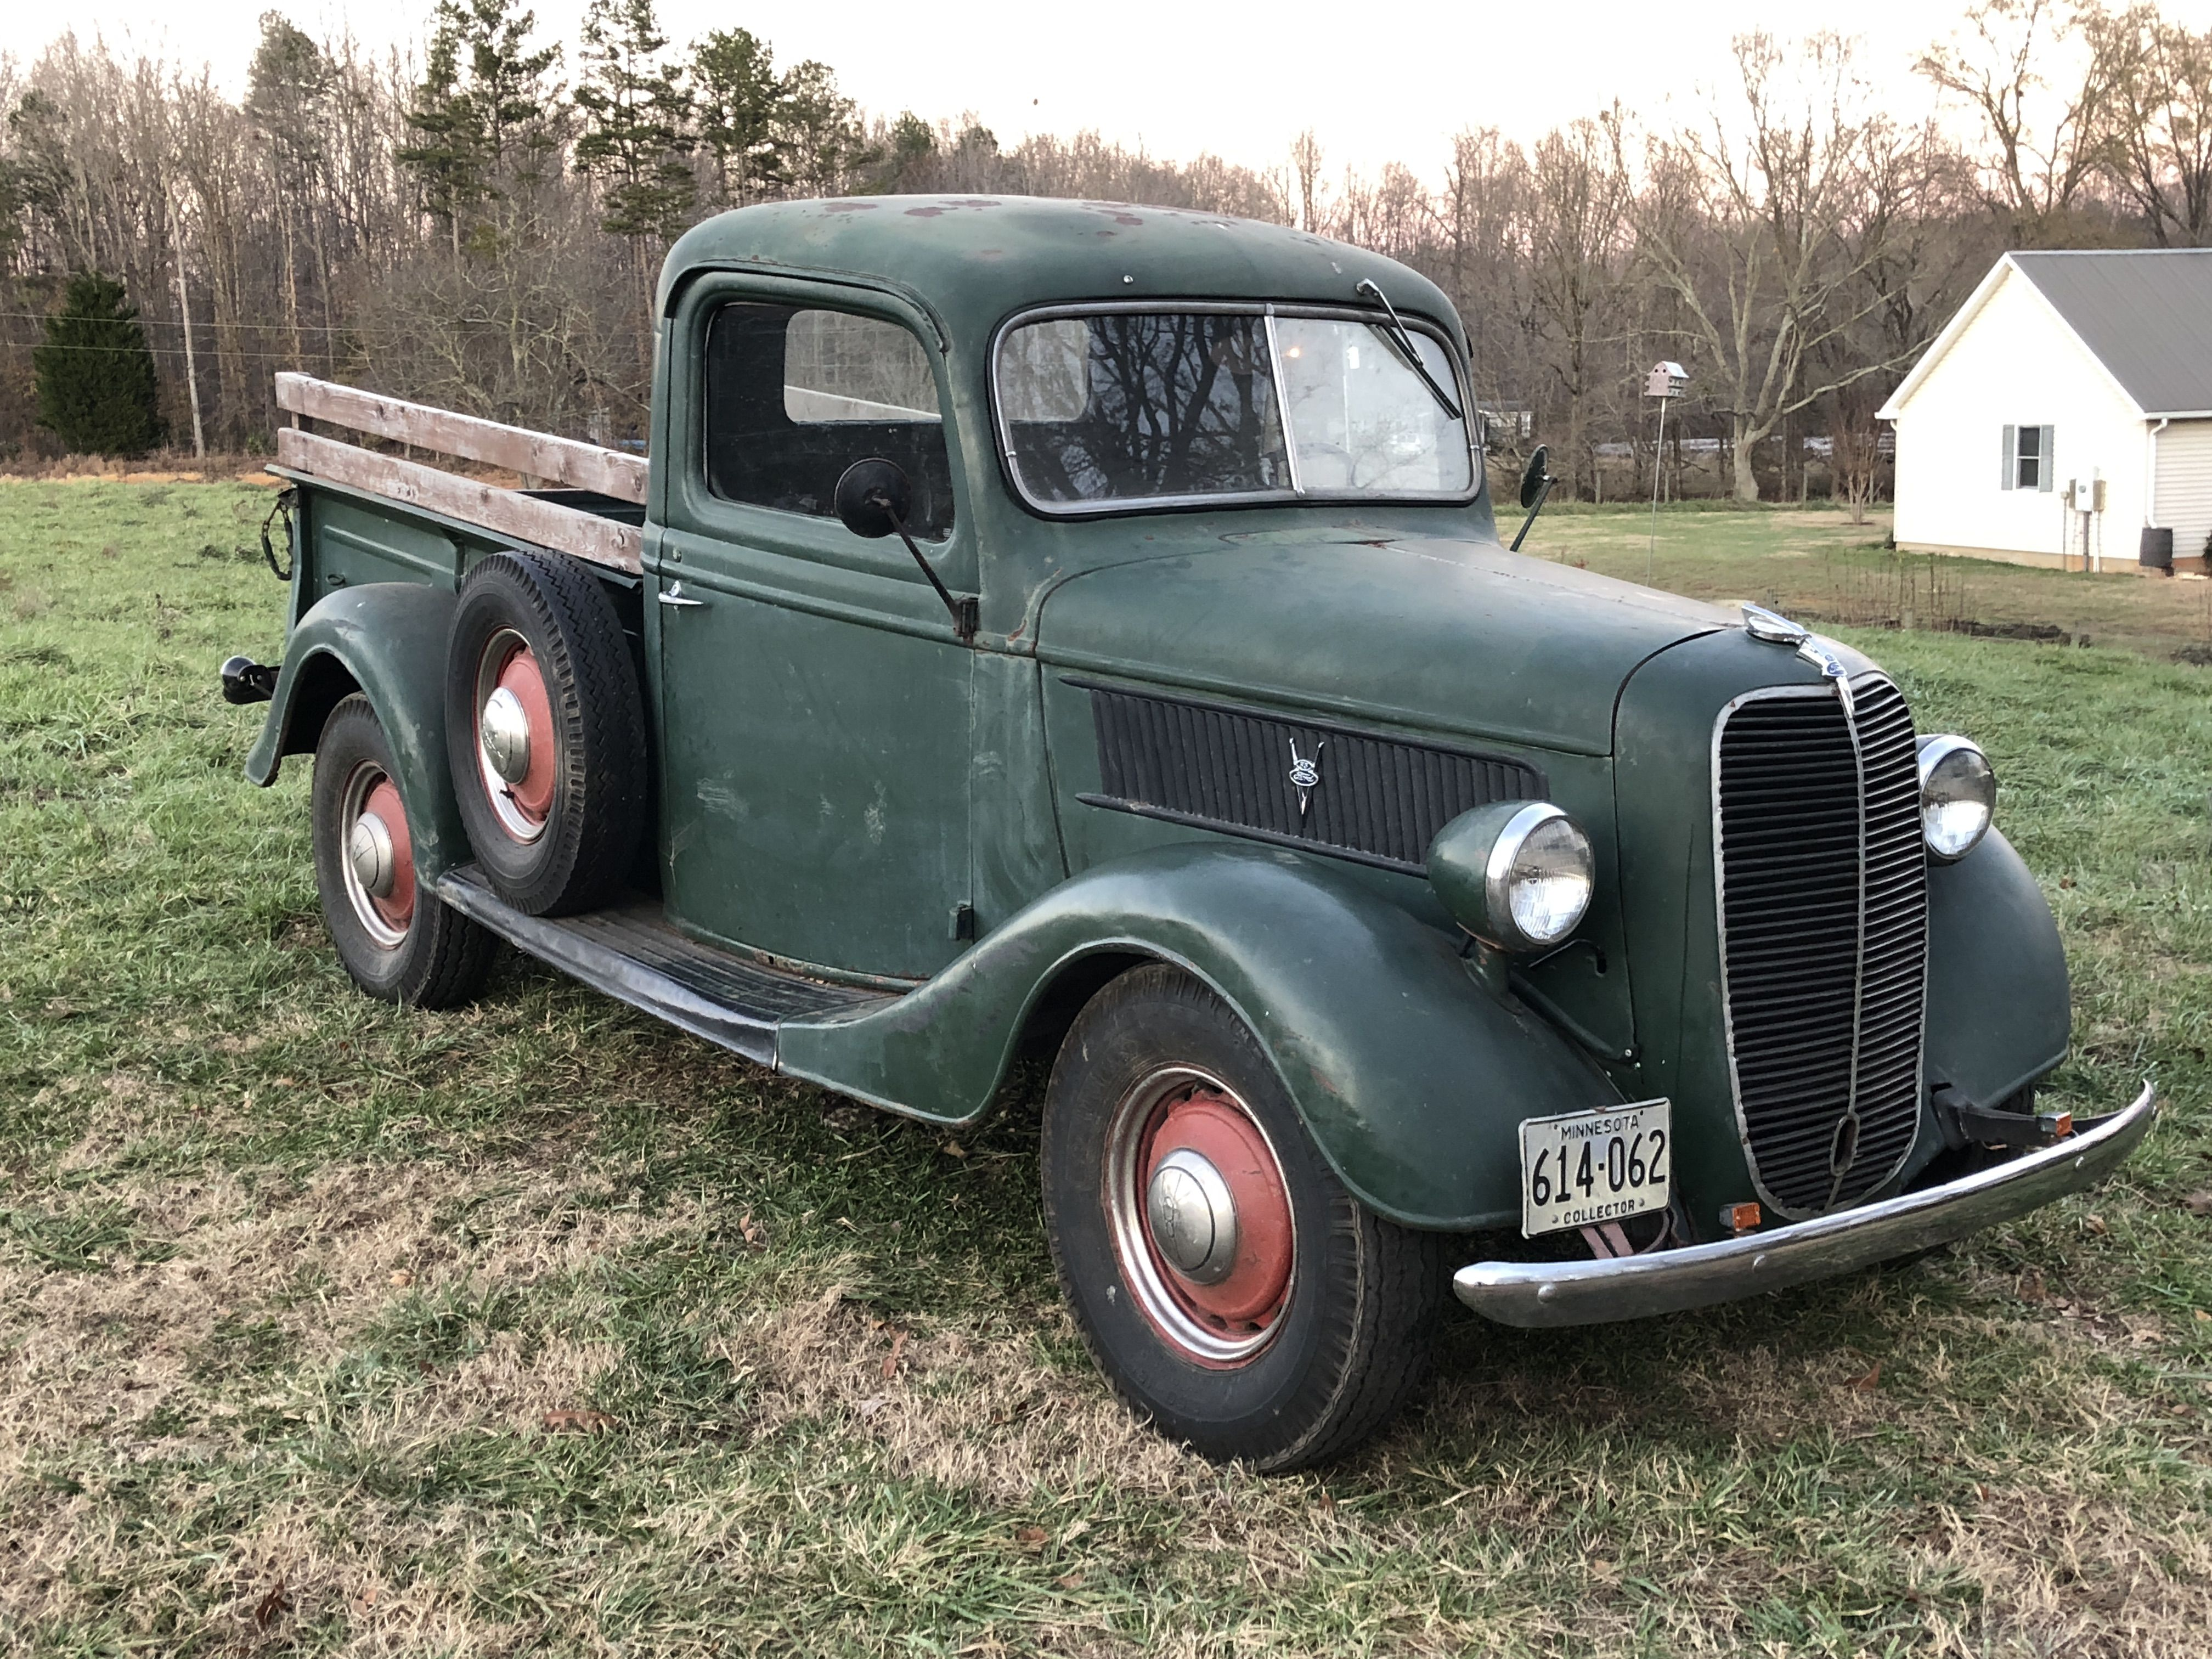 37 Ford Farm Truck With Images Vintage Pickup Trucks Old